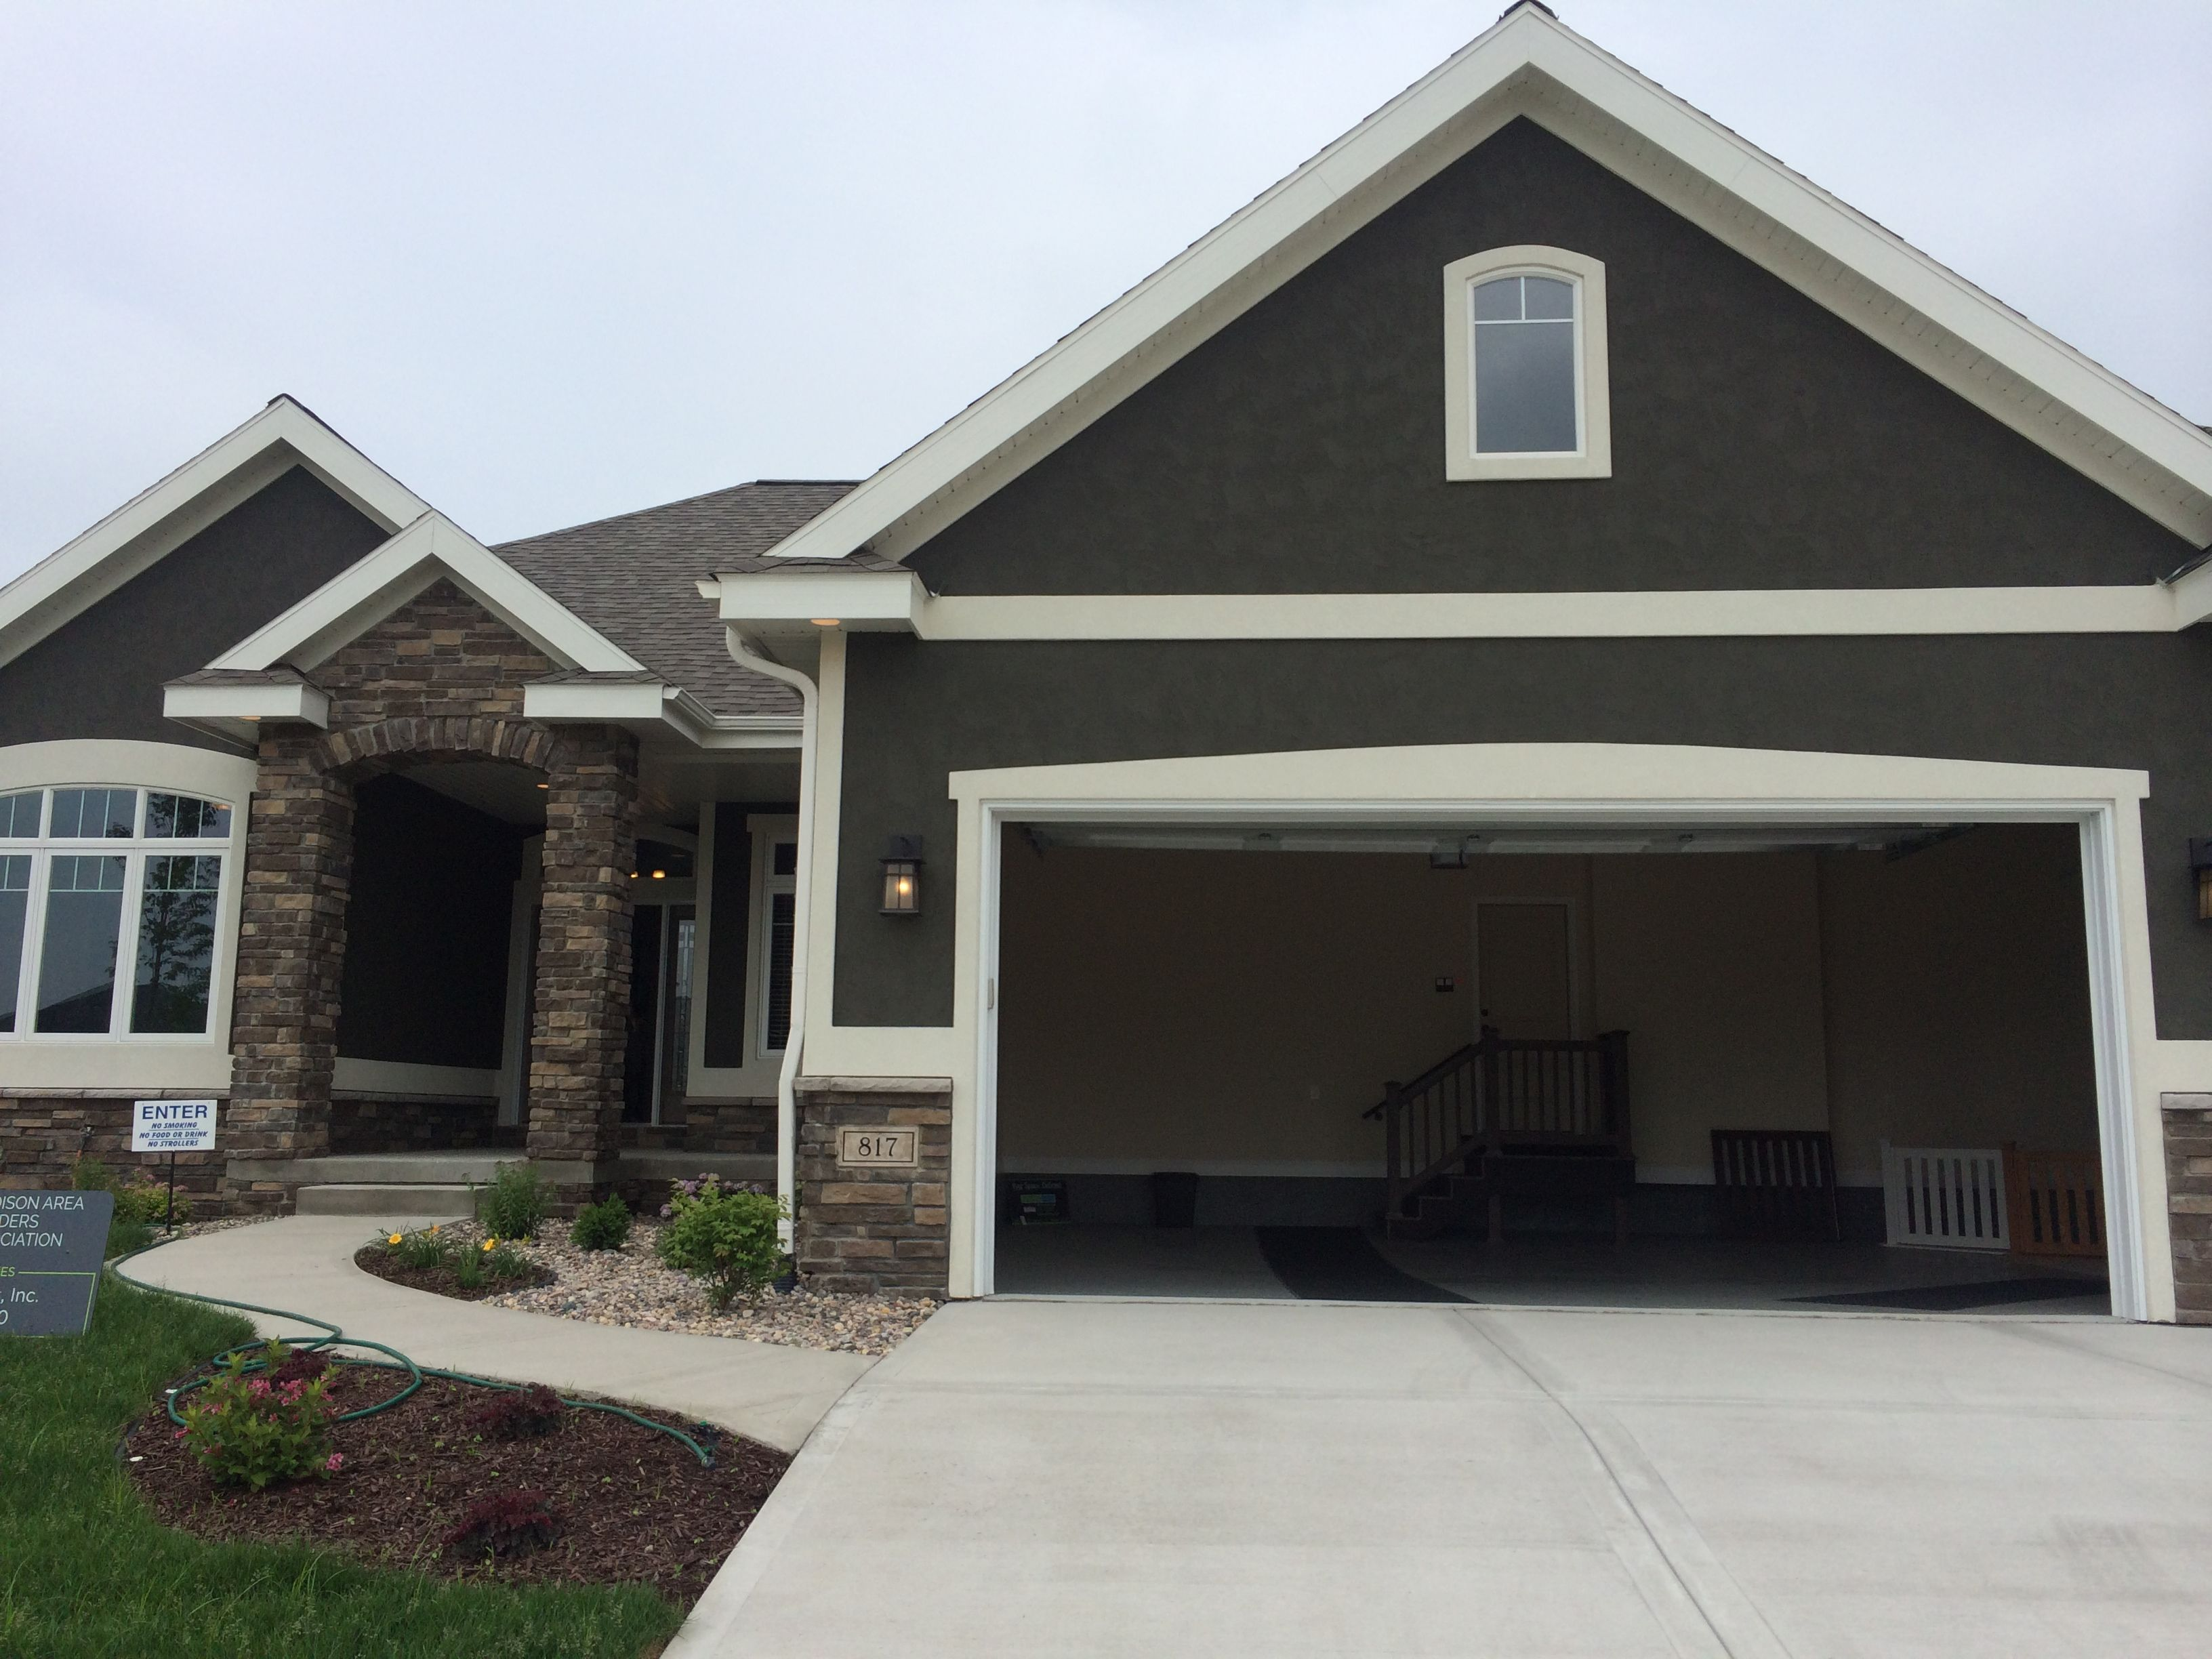 Dark grey stucco exterior white trim nice stone entrance - Popular exterior paint colors 2014 ...